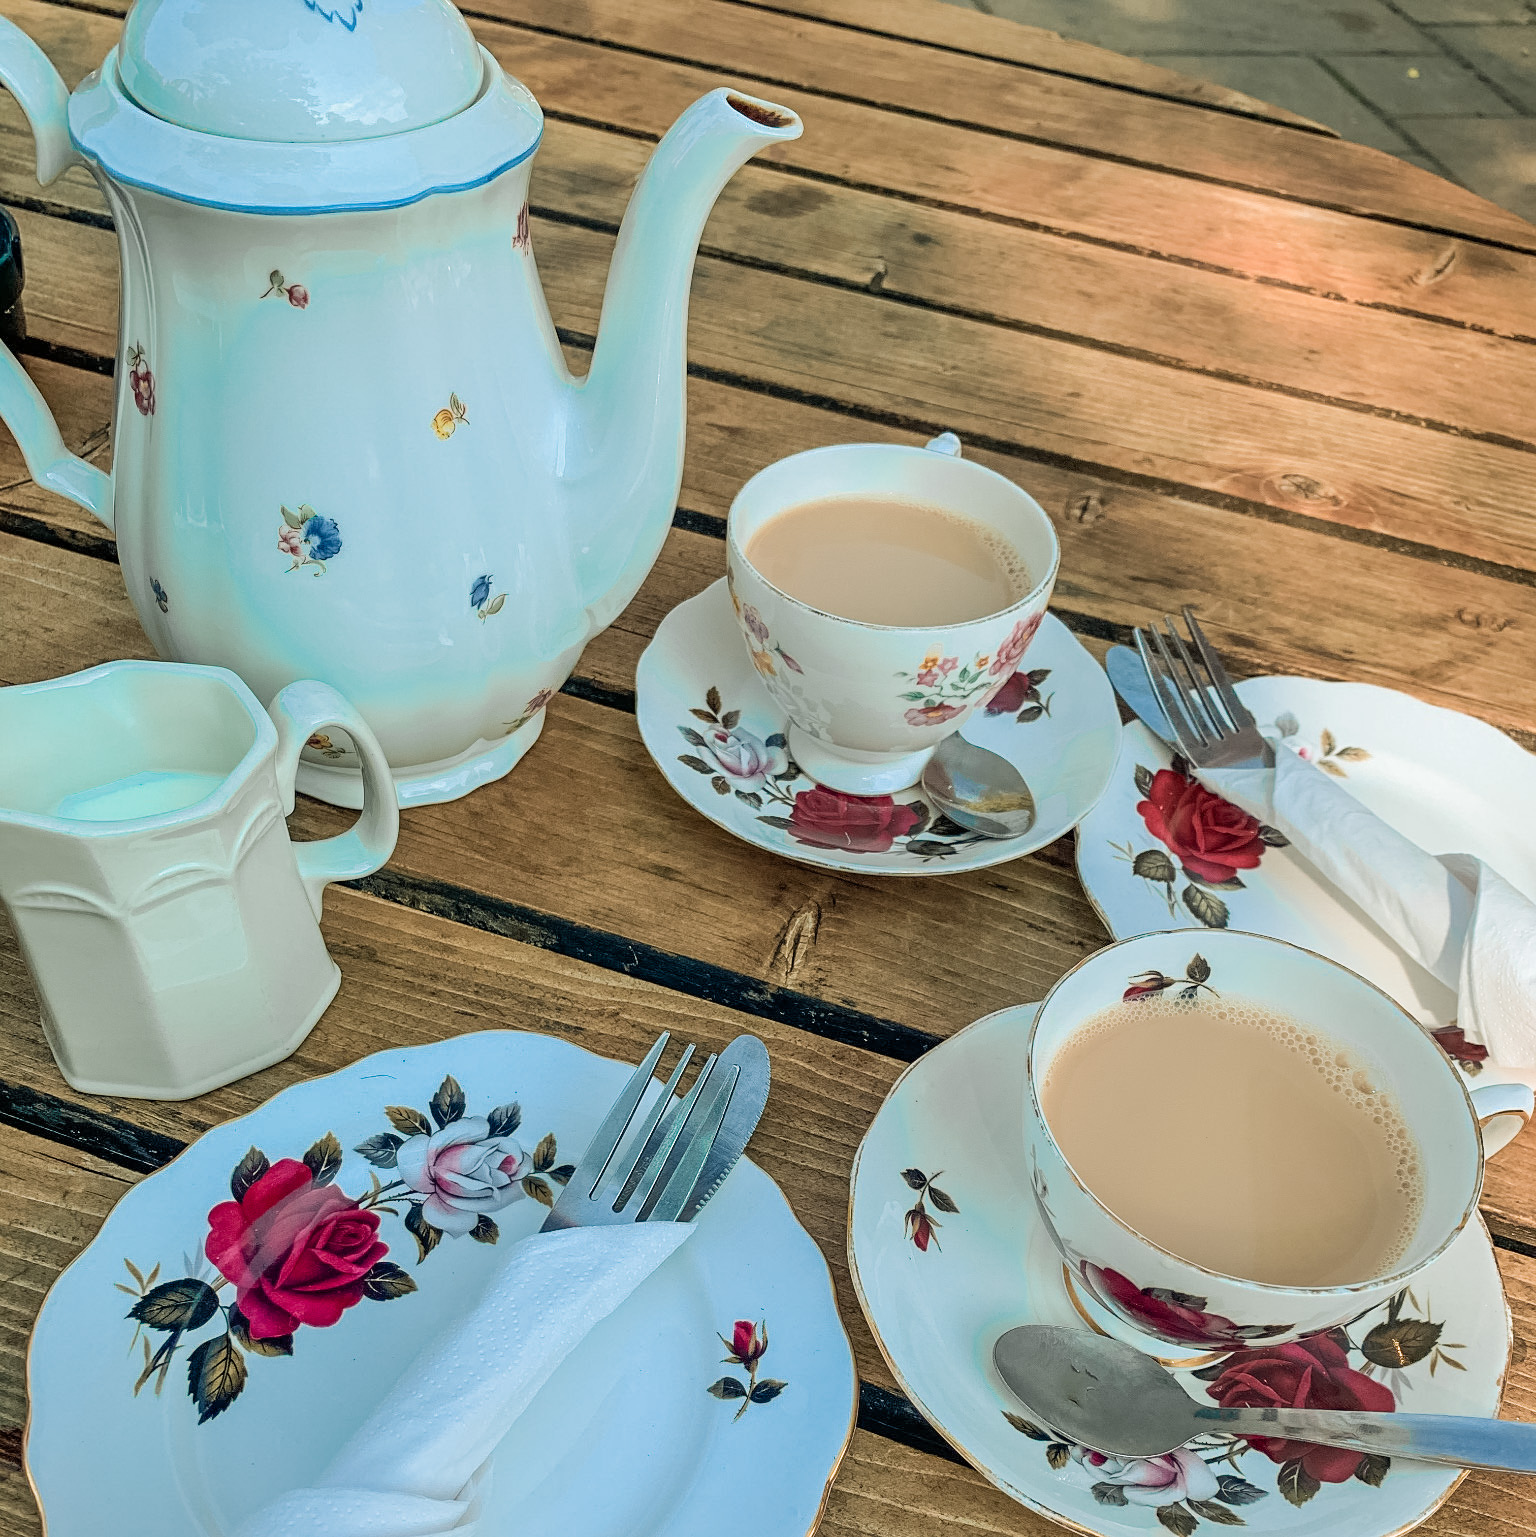 a floral tea set consisting of a teapot, milk jug and 2 cups with saucers